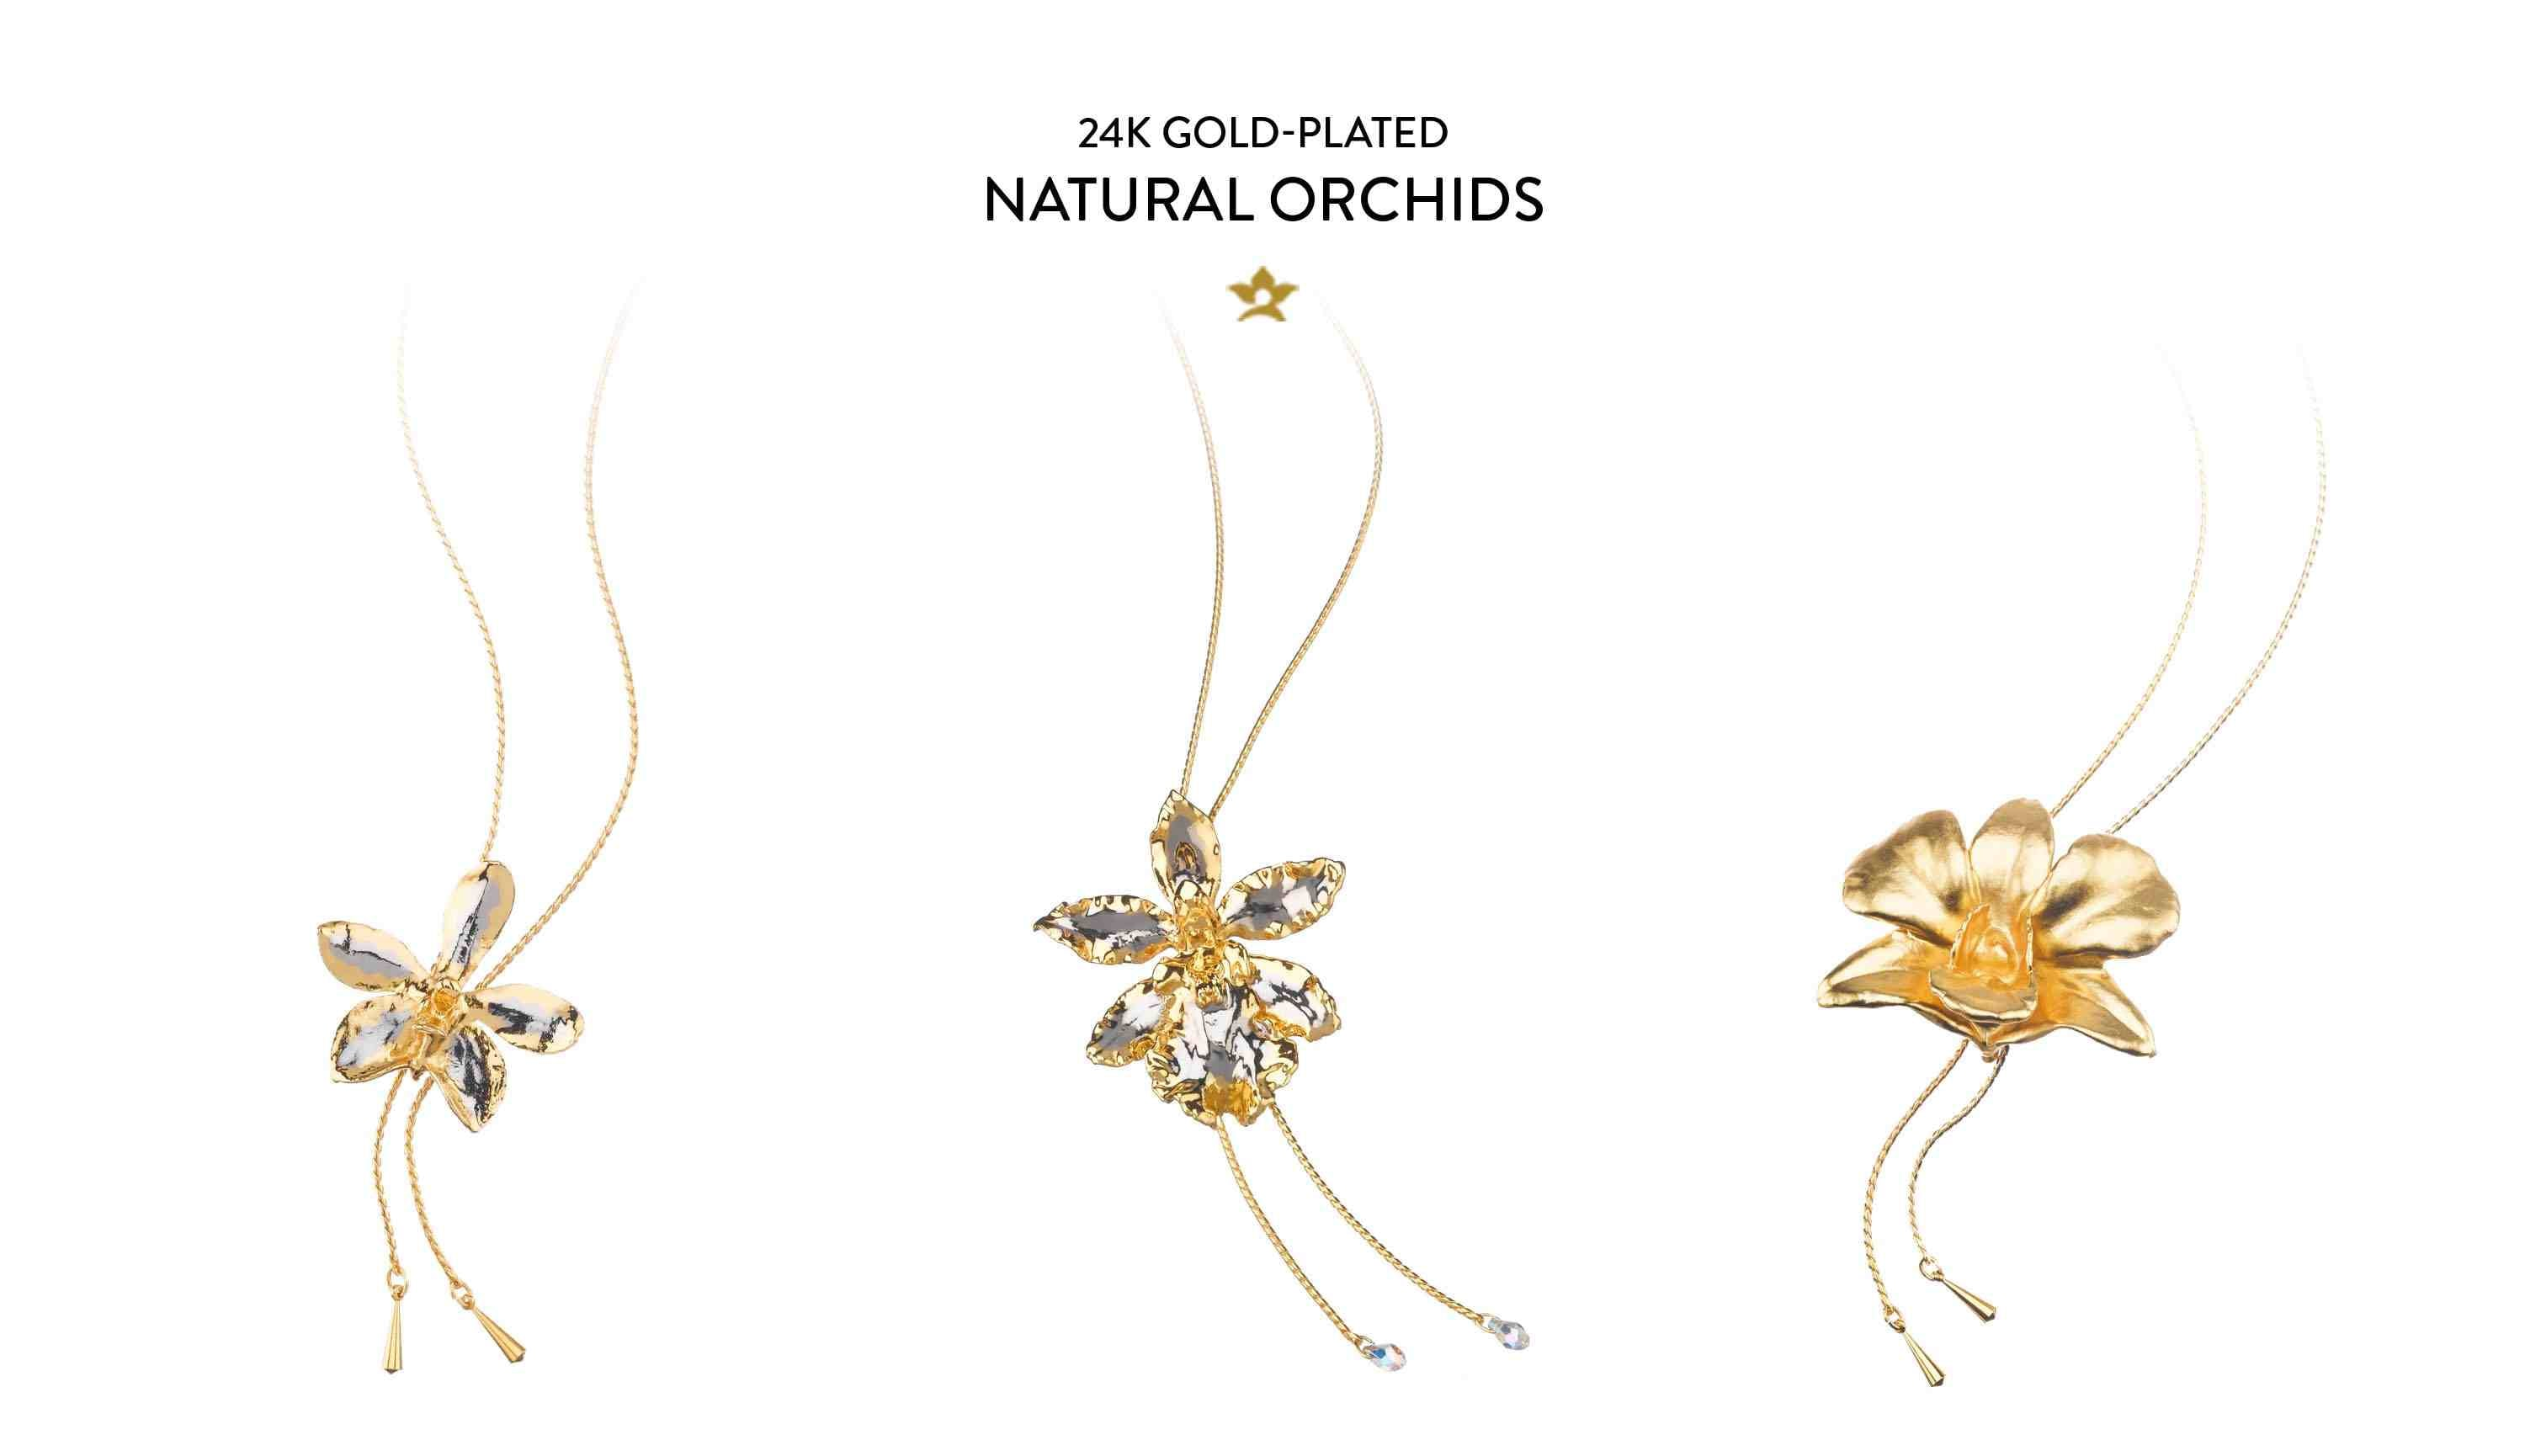 24K Gold-Plated Natural Orchids